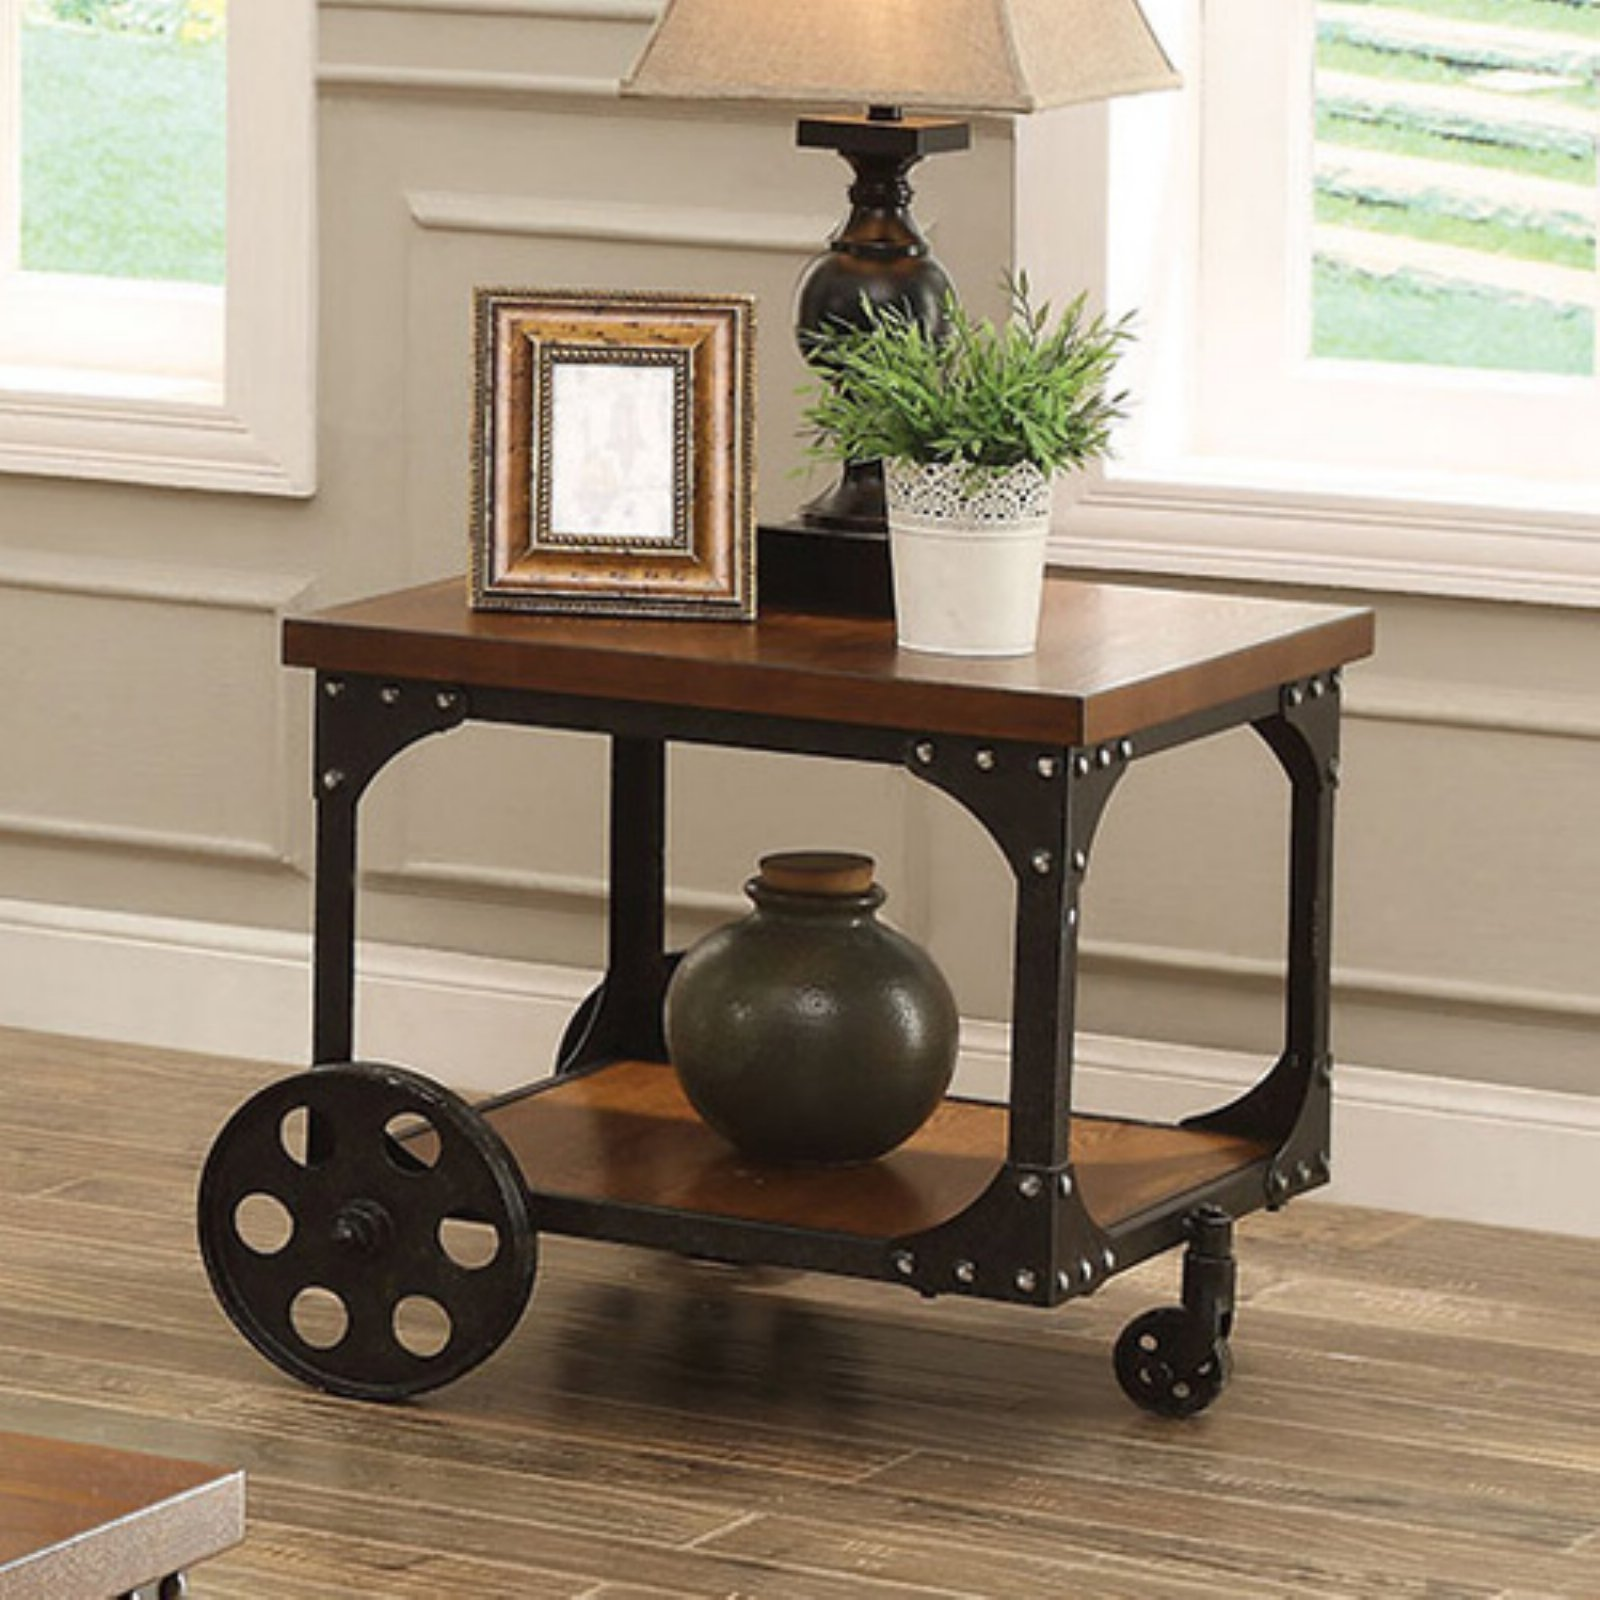 Coaster Furniture Wood End Table with Metal Casters by Coaster